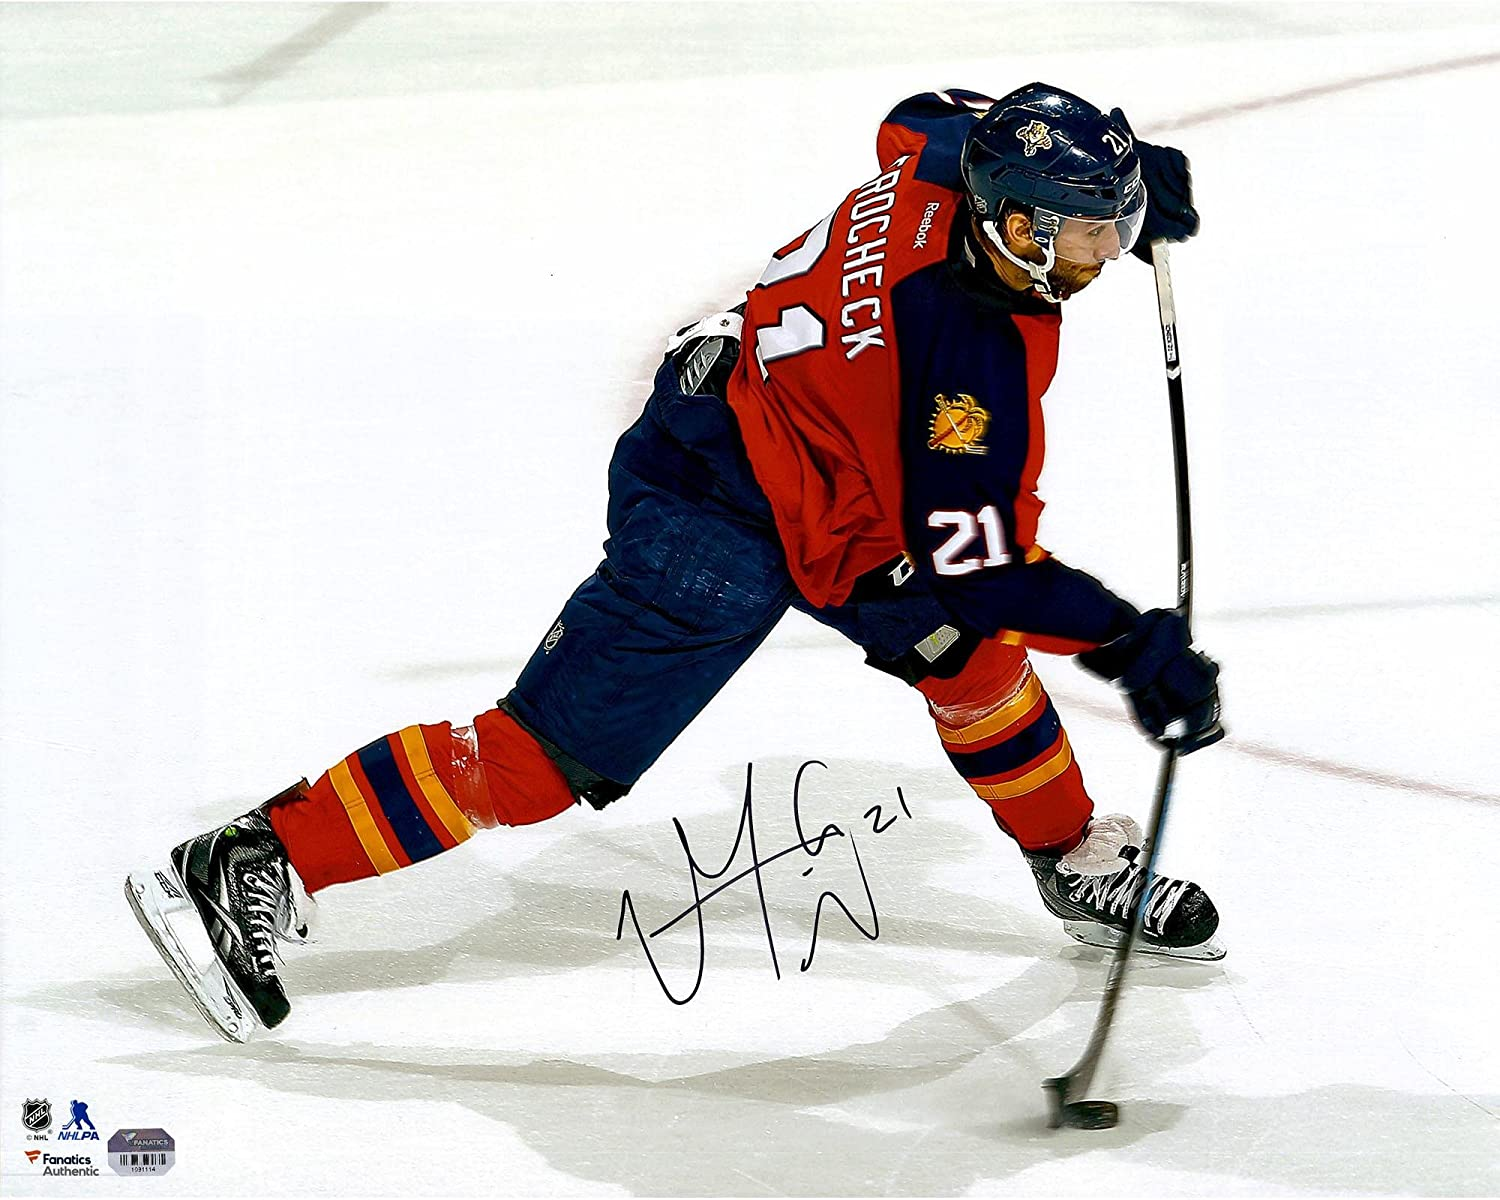 ... Jersey - Authentic Reebok NHL Mens Away Reebok120099 80%OFF Vincent  Trocheck Florida Panthers Autographed 16 ... 3a5dd4a17